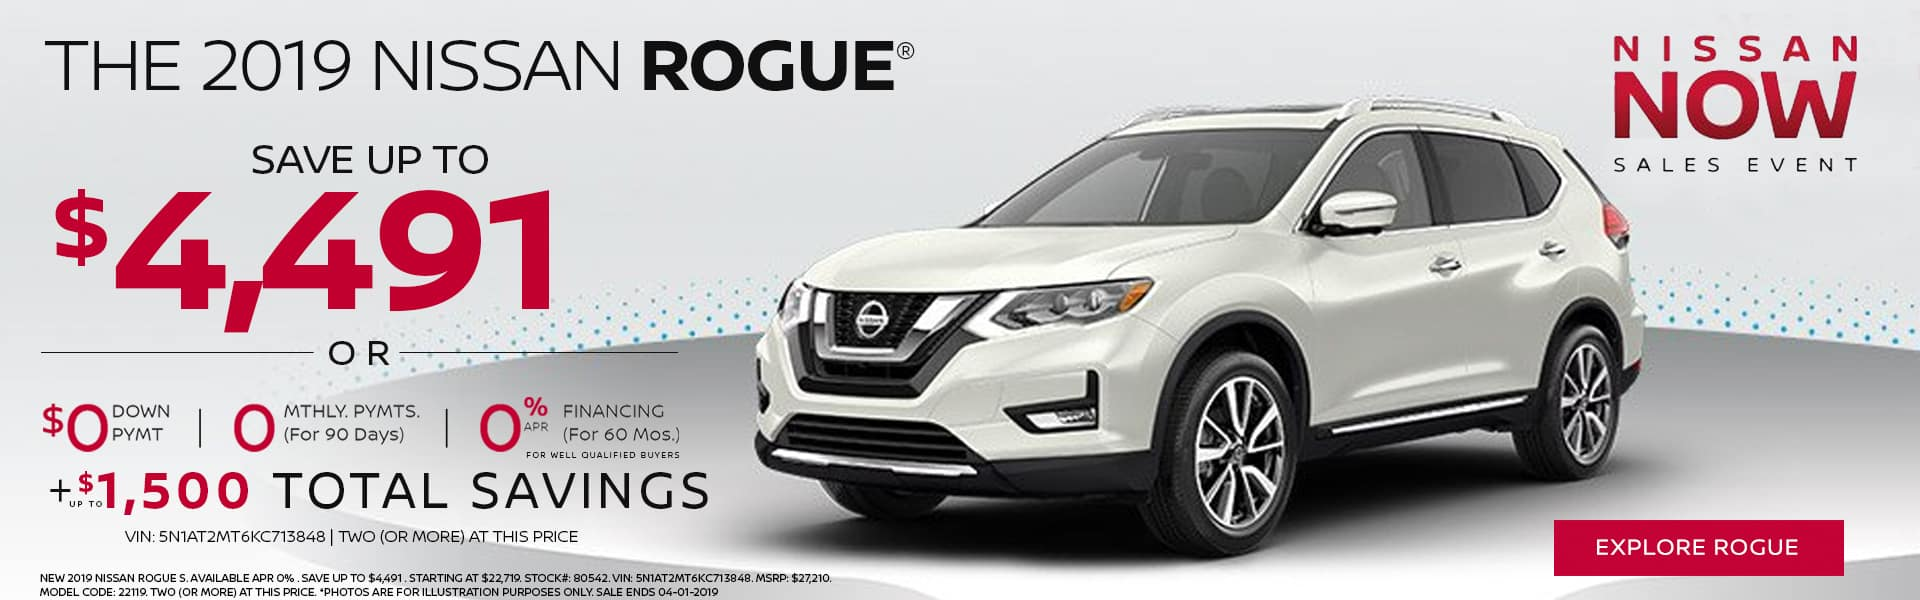 THE 2019 NISSAN ROGUE®